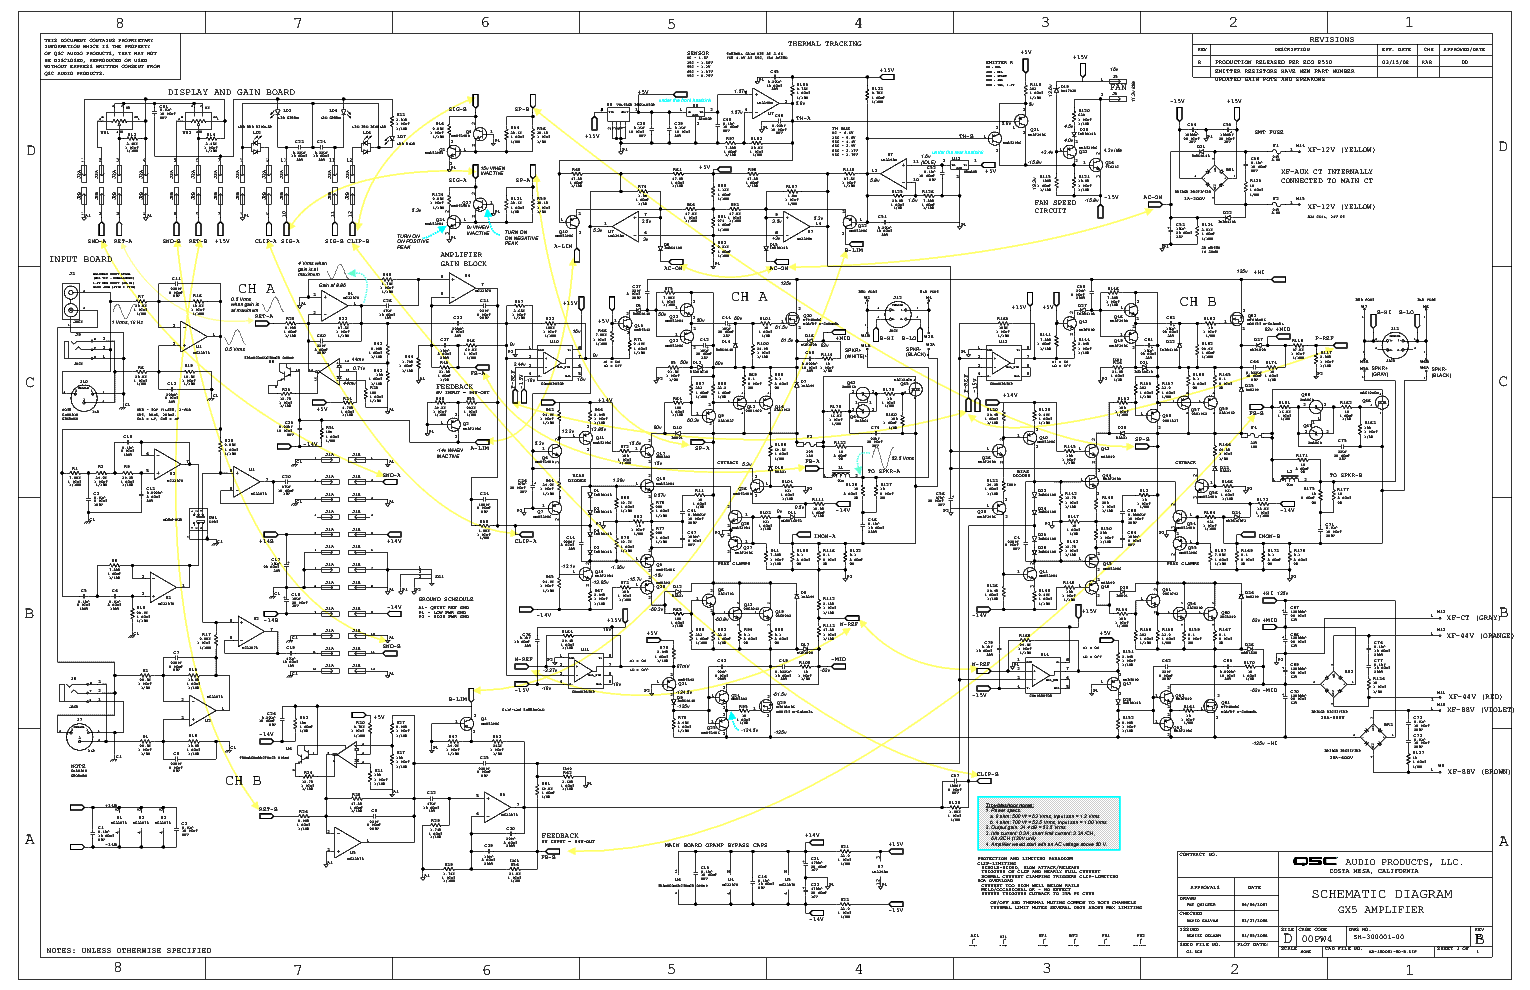 qsc_gx5_sh_ts_sch.pdf_1 Qsc Plx Schematic Diagram on isa 300ti, pl340 power supply, gx 3 amplifier, k-12 ksub, 1400 power amp, k10 speaker, usa 900 amplifier,